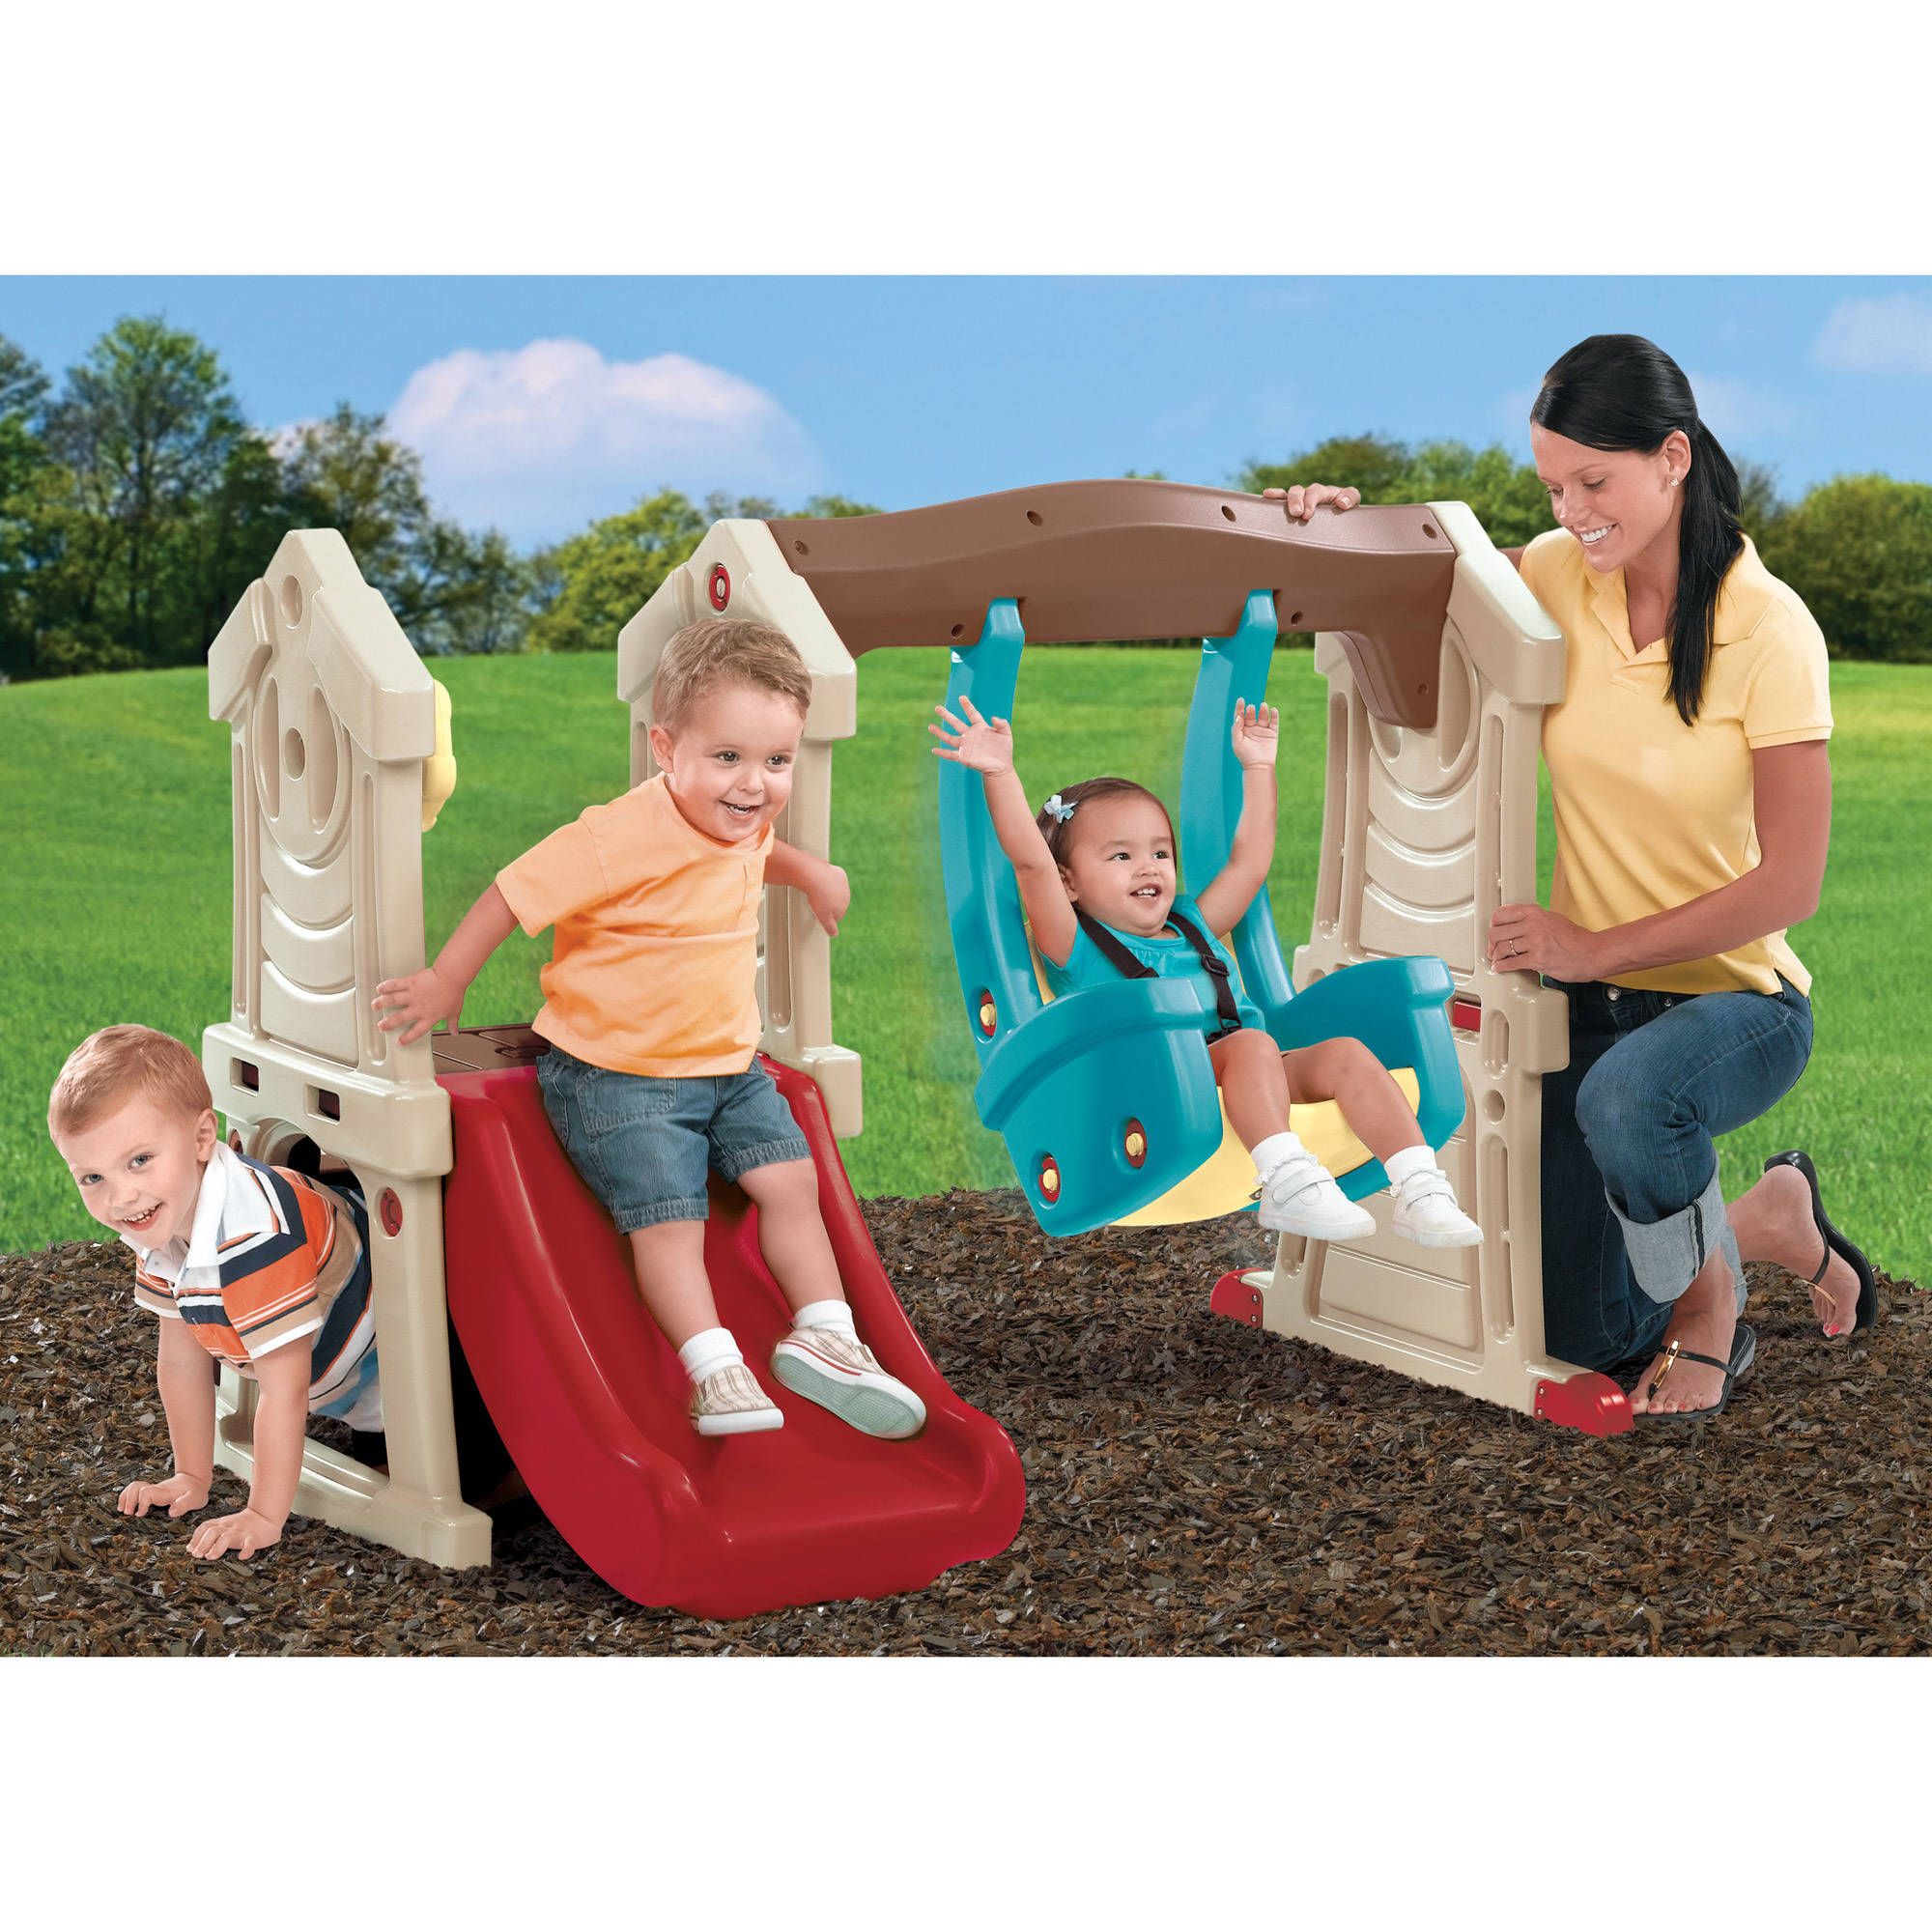 Step2 Toddler Swing and Slide